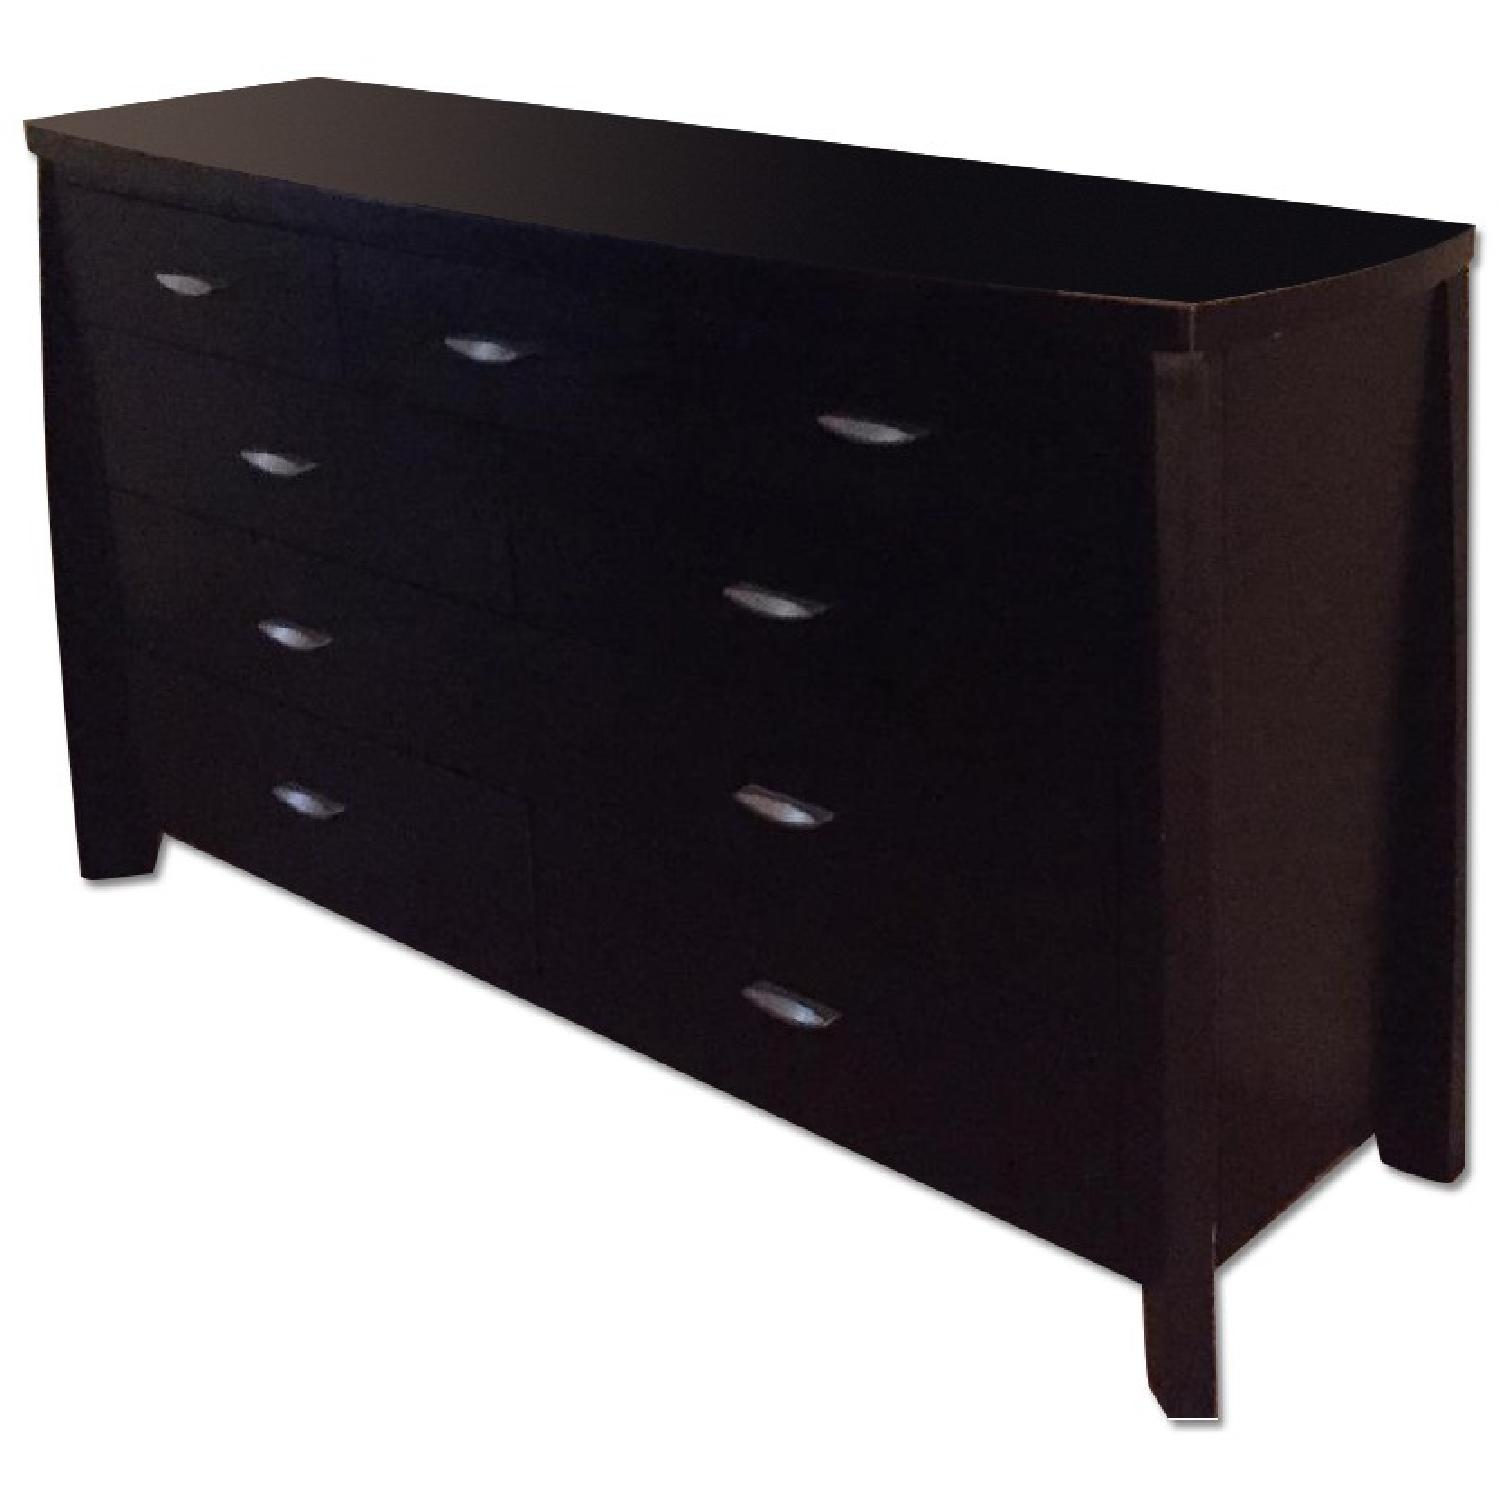 Rooms To Go Black Wood Dresser - image-0